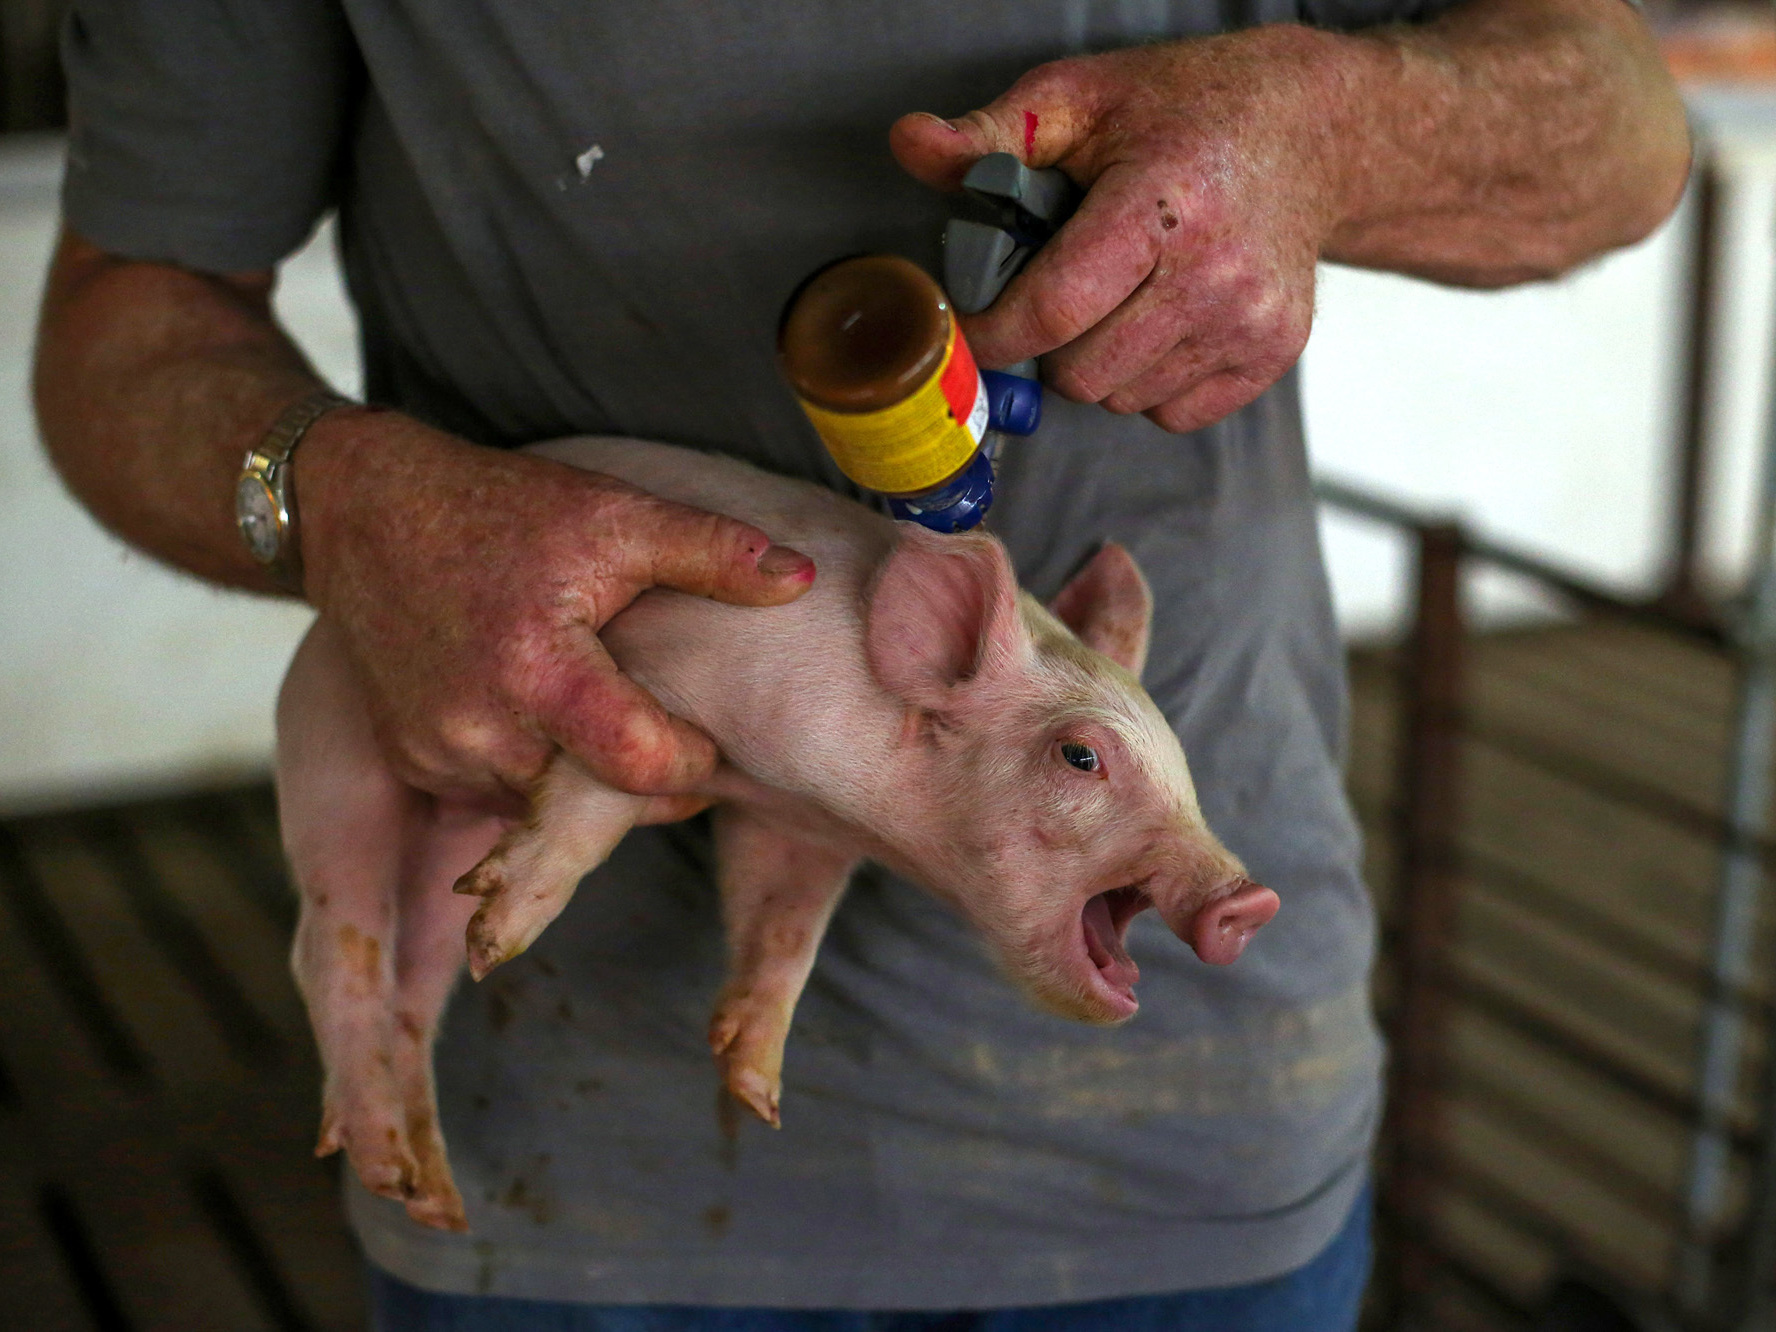 WHO To Farmers: Stop Giving Your Animals So Many Antibiotics